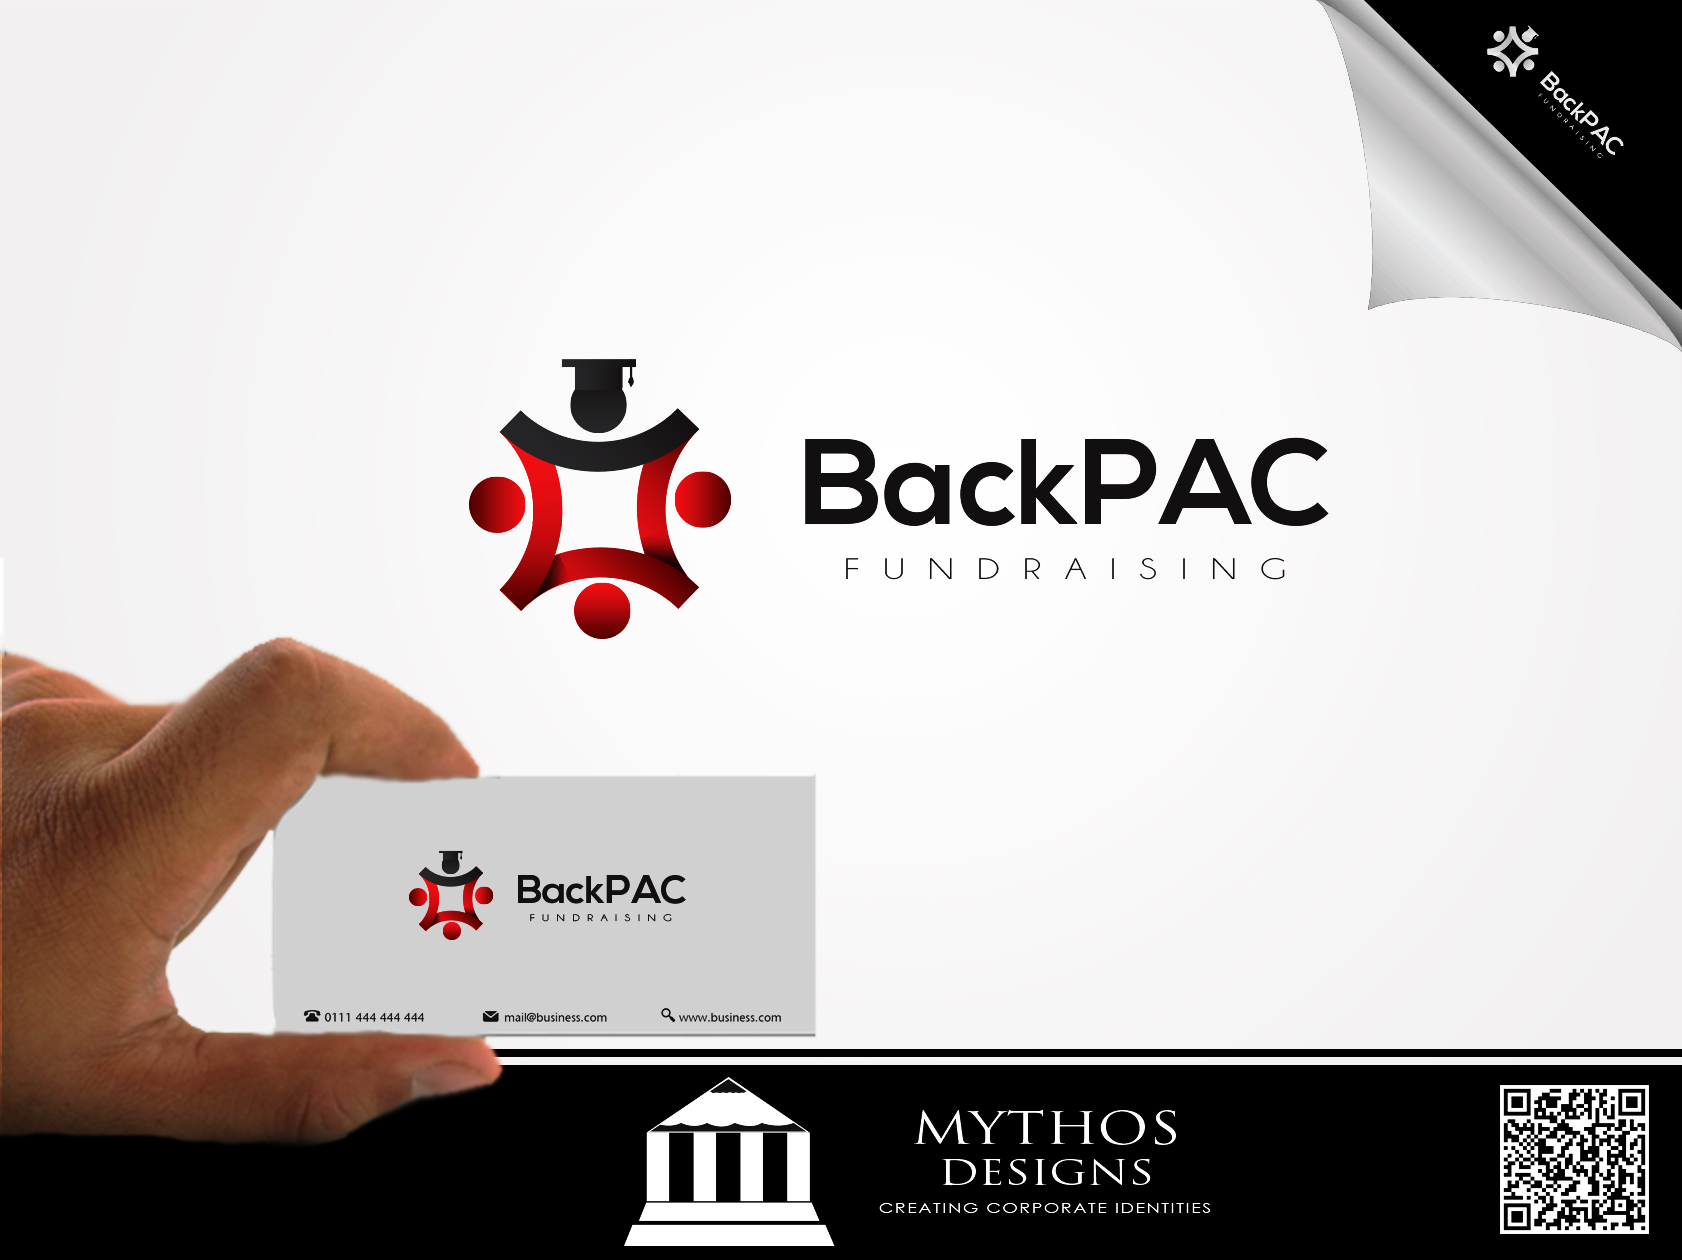 Logo Design by Mythos Designs - Entry No. 3 in the Logo Design Contest Imaginative Logo Design for BackPAC Fundraising.